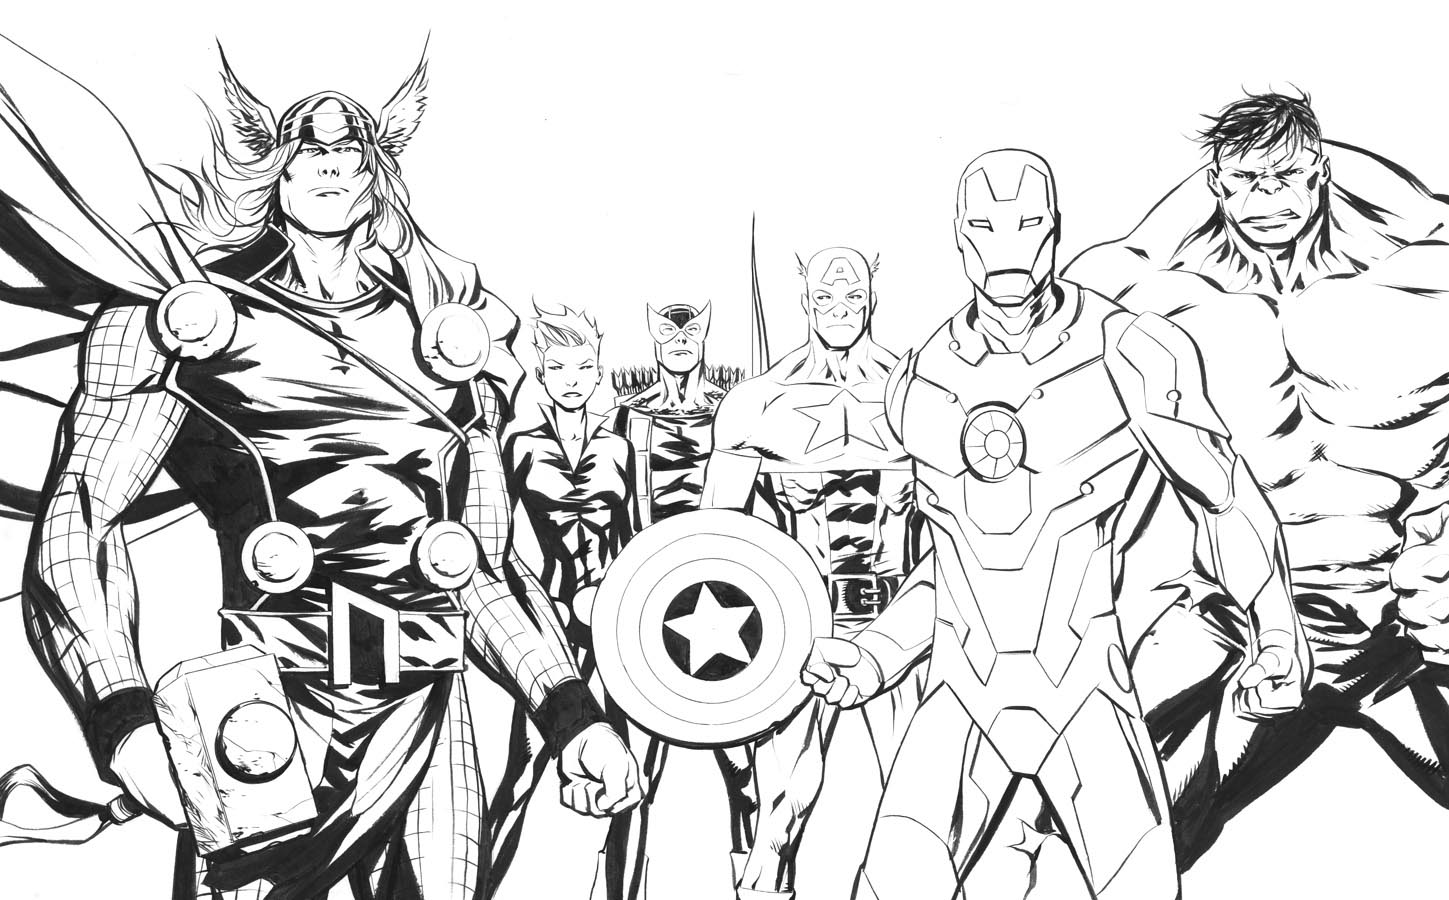 cute marvel coloring pages marvel chibi deadpool coloring pages with a bag free cute marvel pages coloring